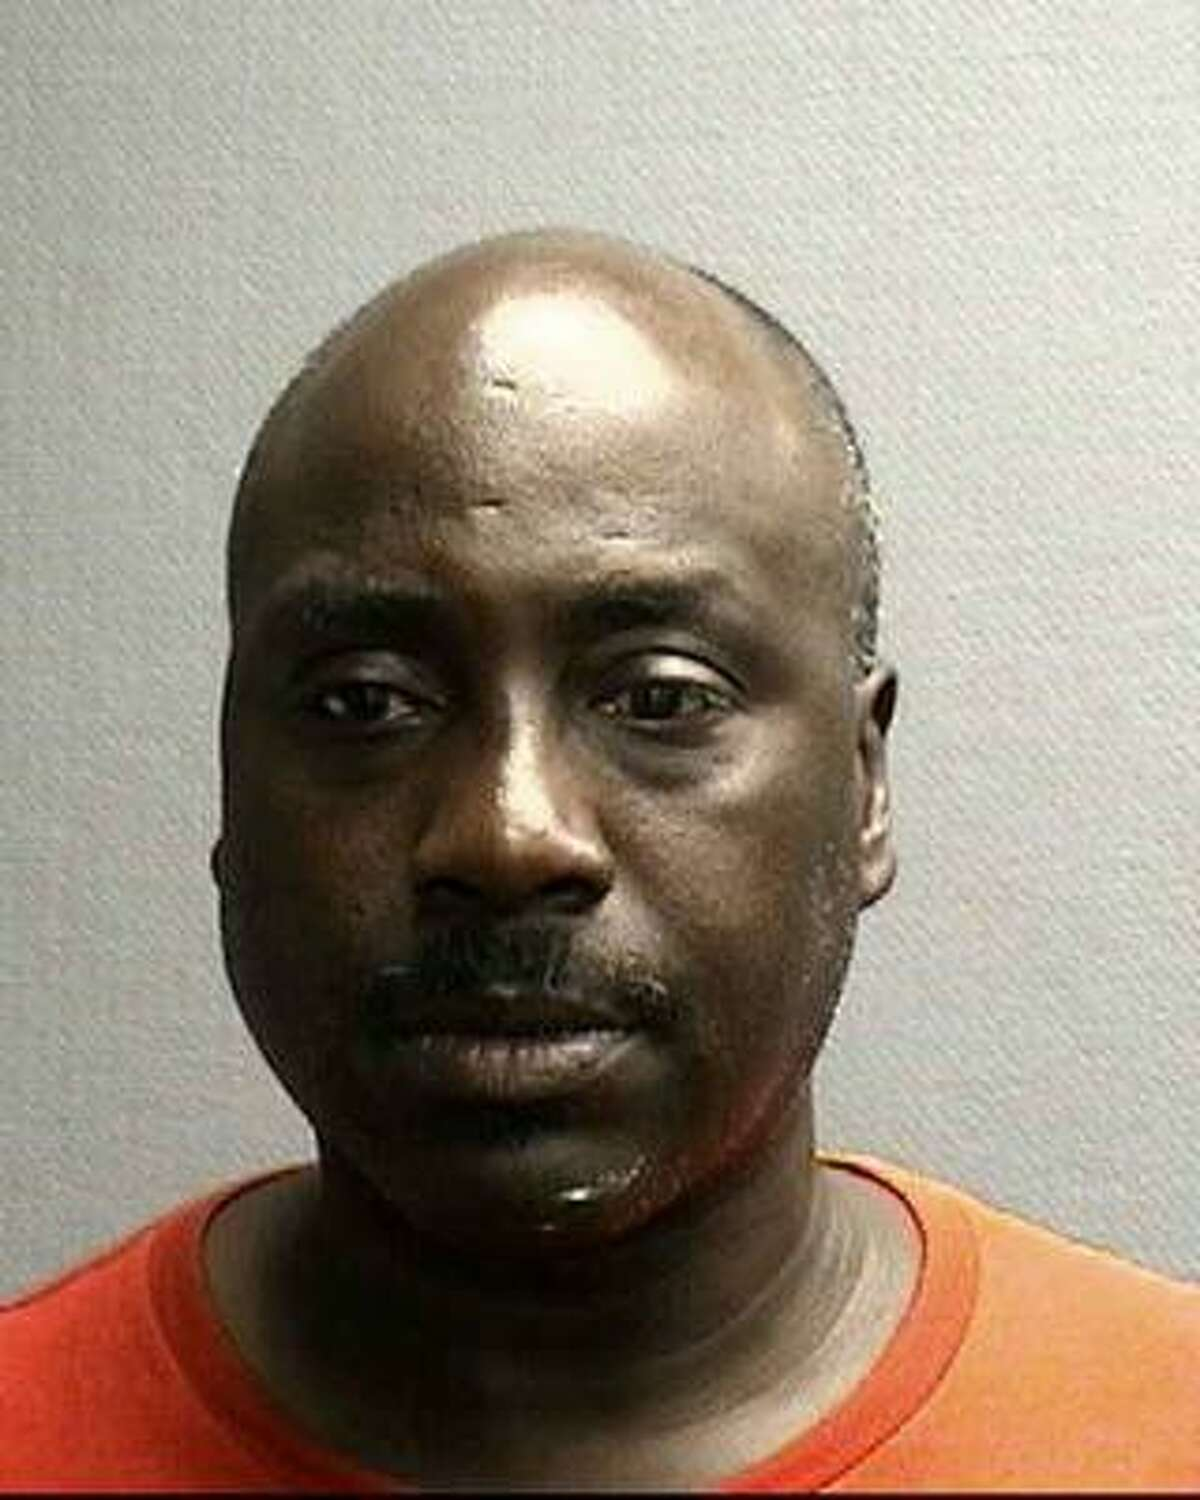 A man known as Joe Edward Gary, 51, was shot to death on Wednesday in a house in northeast Houston. Criminal records indicate that Gary has used at least two other names.